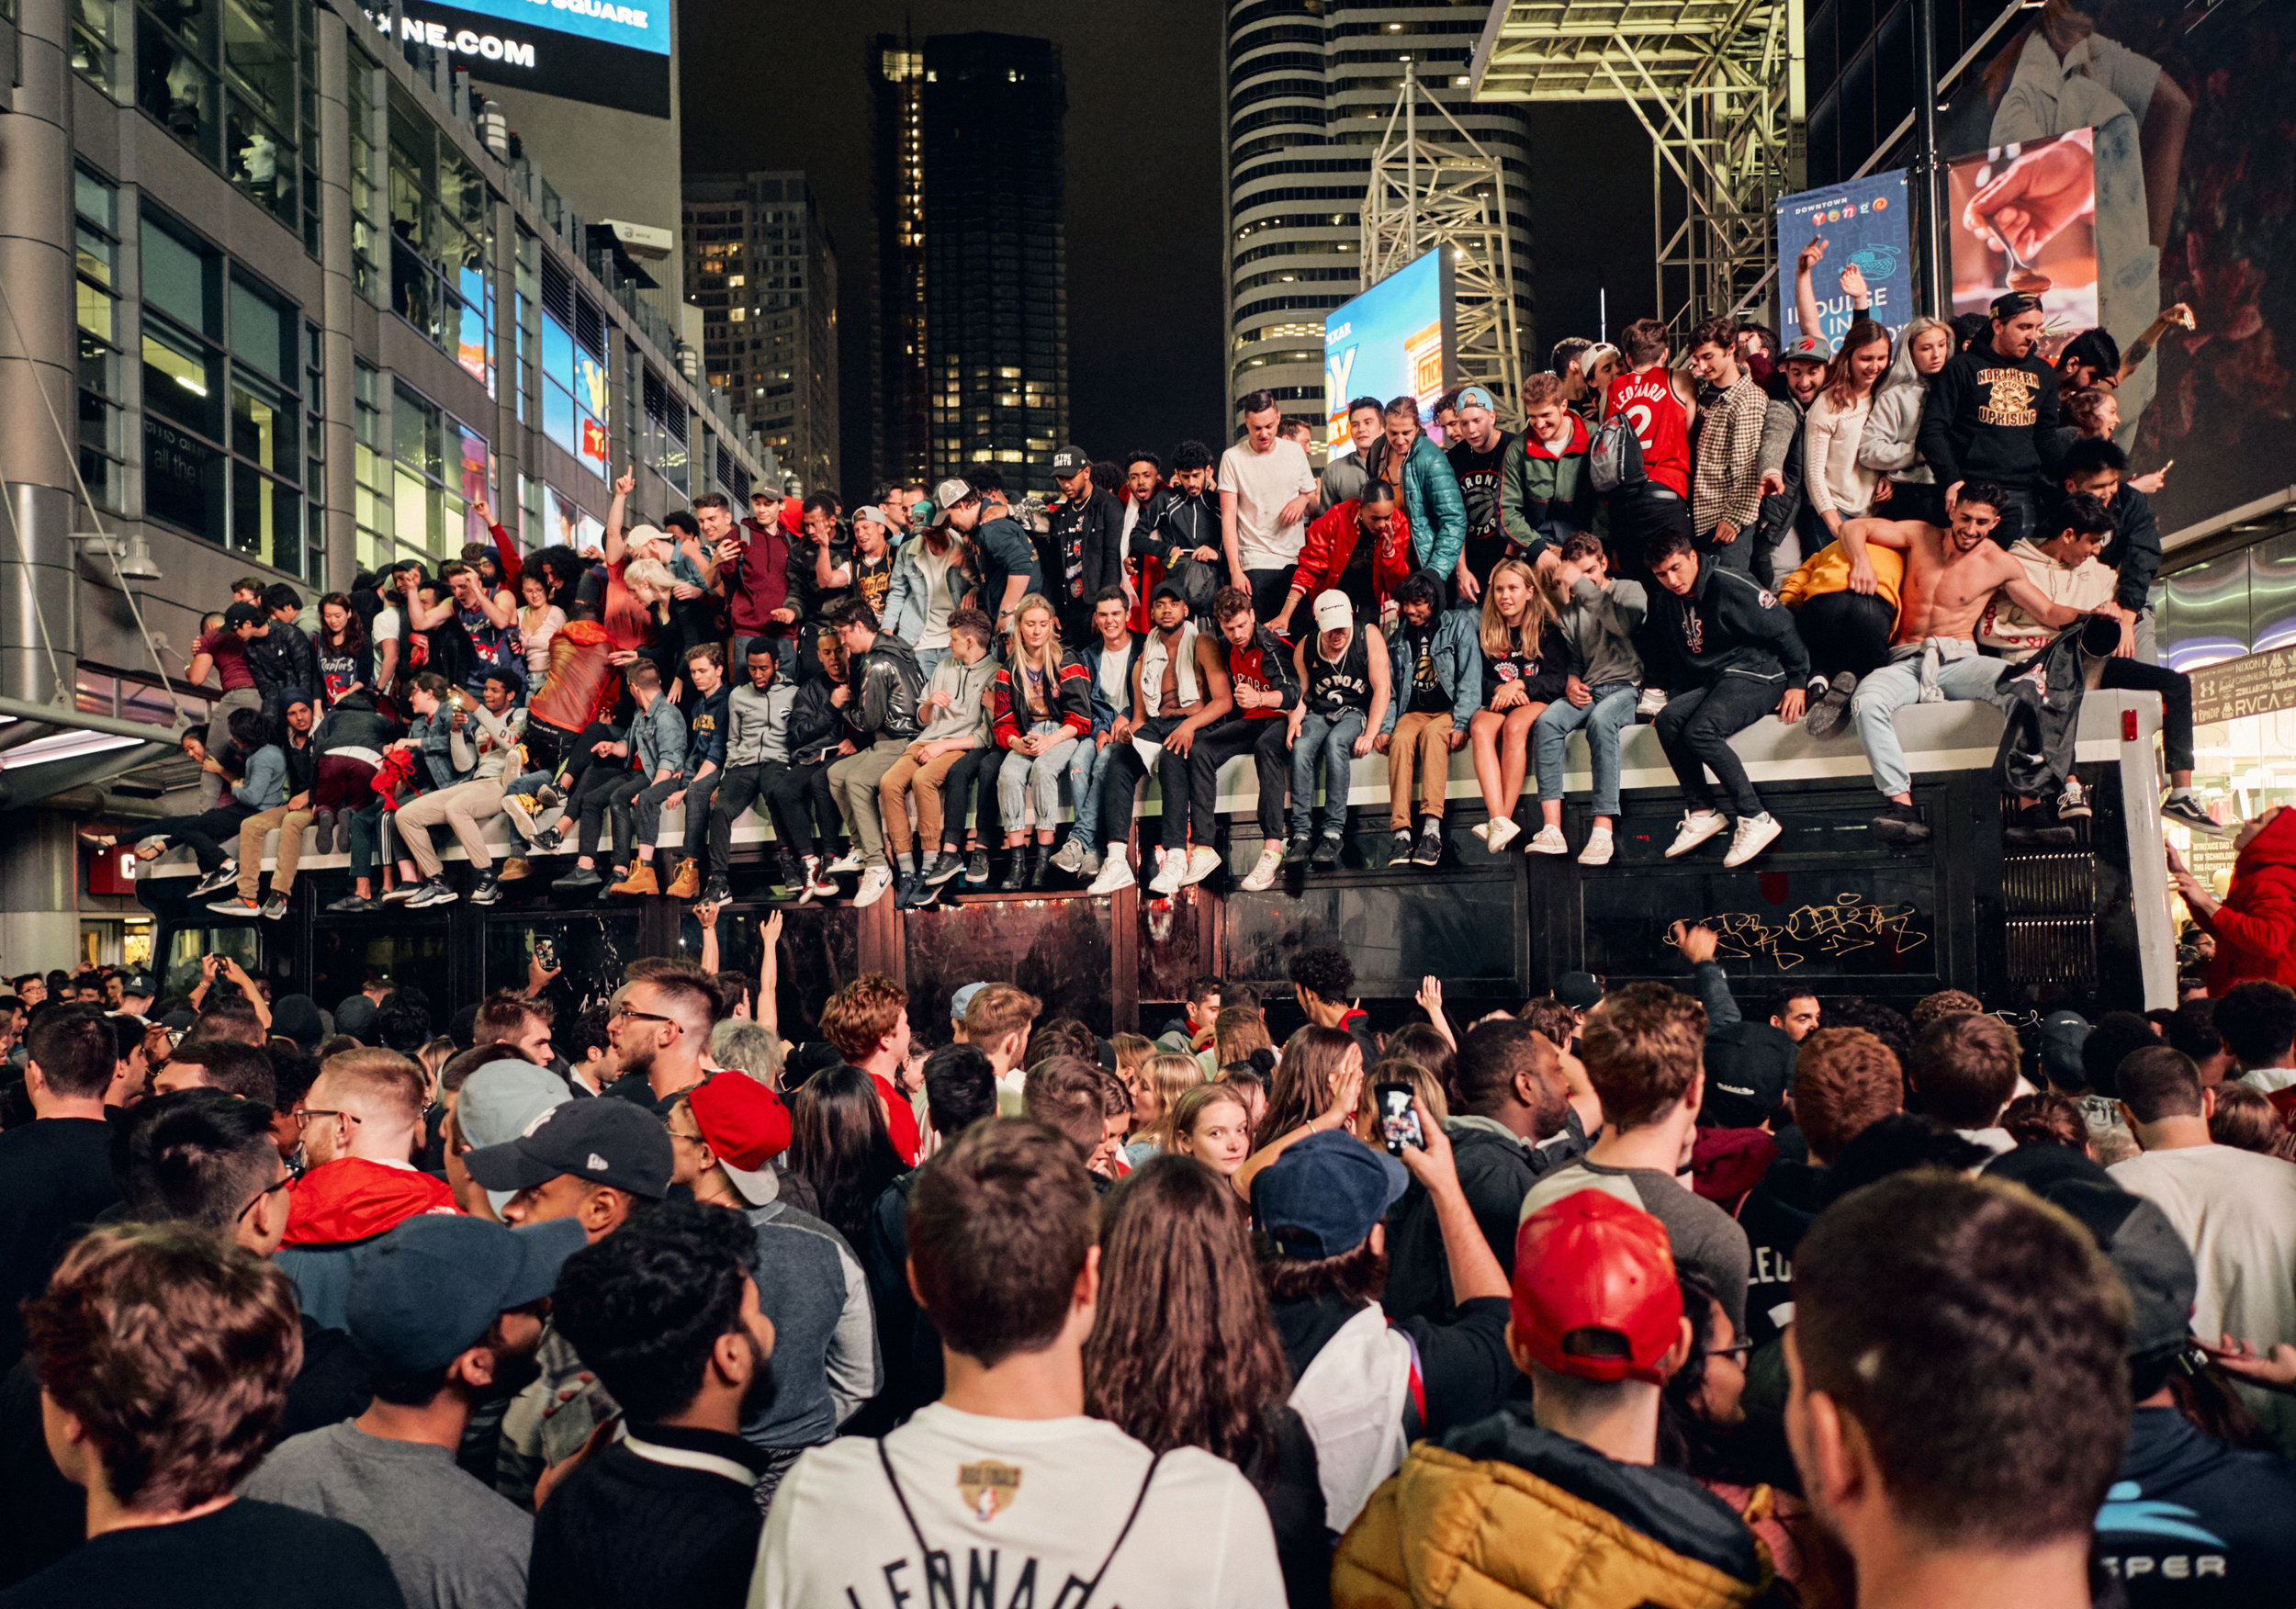 Raptors_Fans_Win_Celebration_Yonge-Dundas_20190614-005952-P1036036.jpg